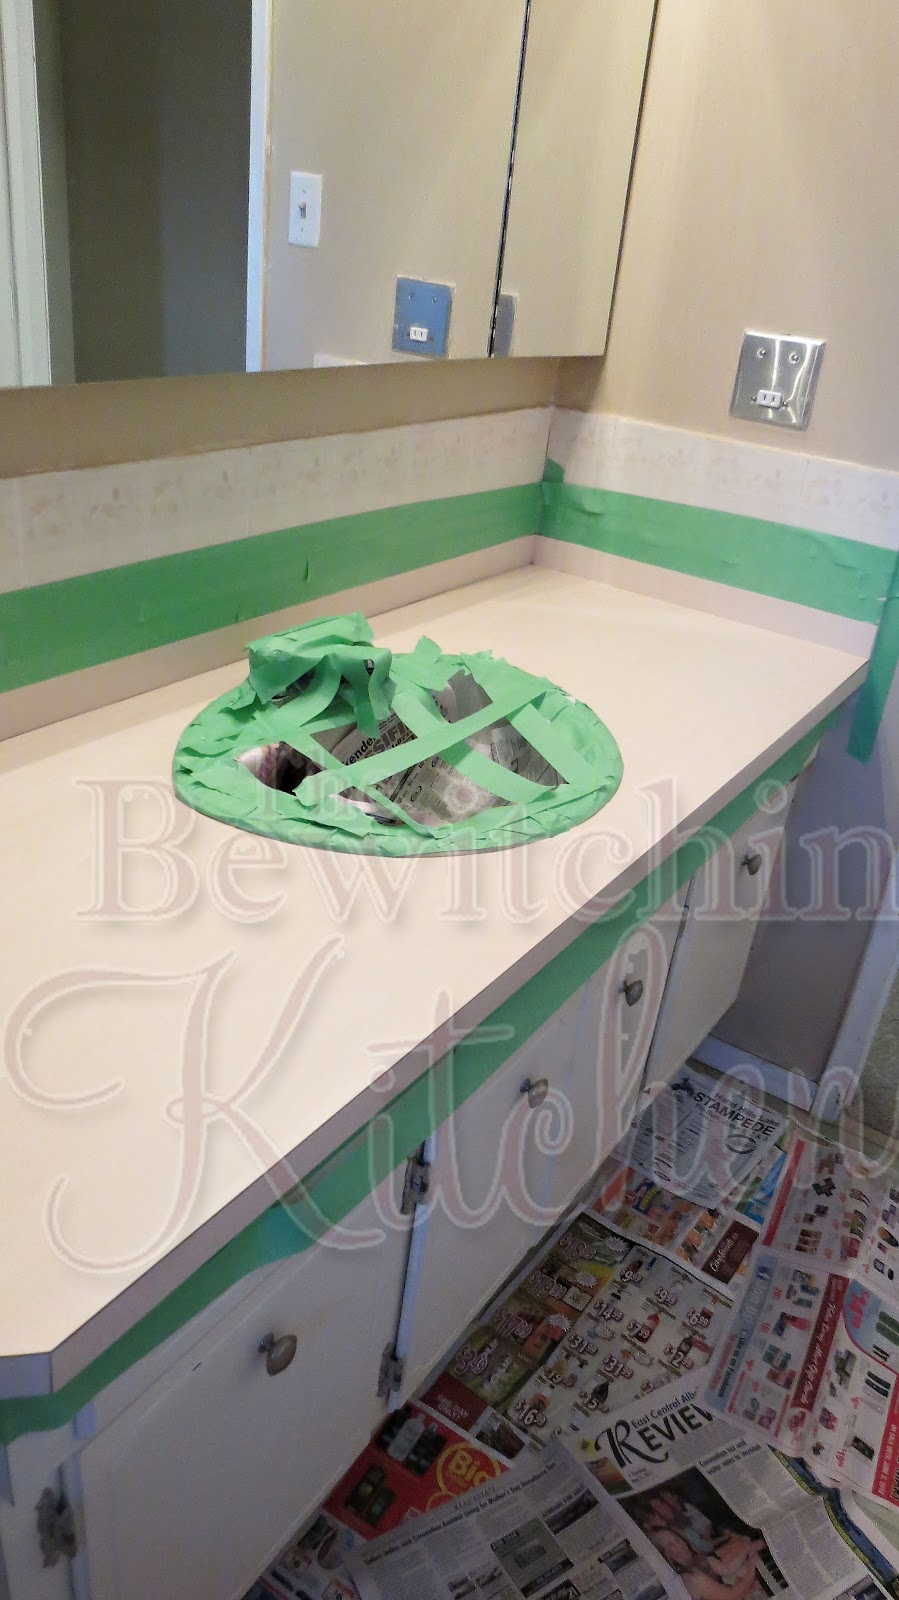 Diy bathroom countertops for 25 the bewitchin 39 kitchen - How to decorate a bathroom counter ...